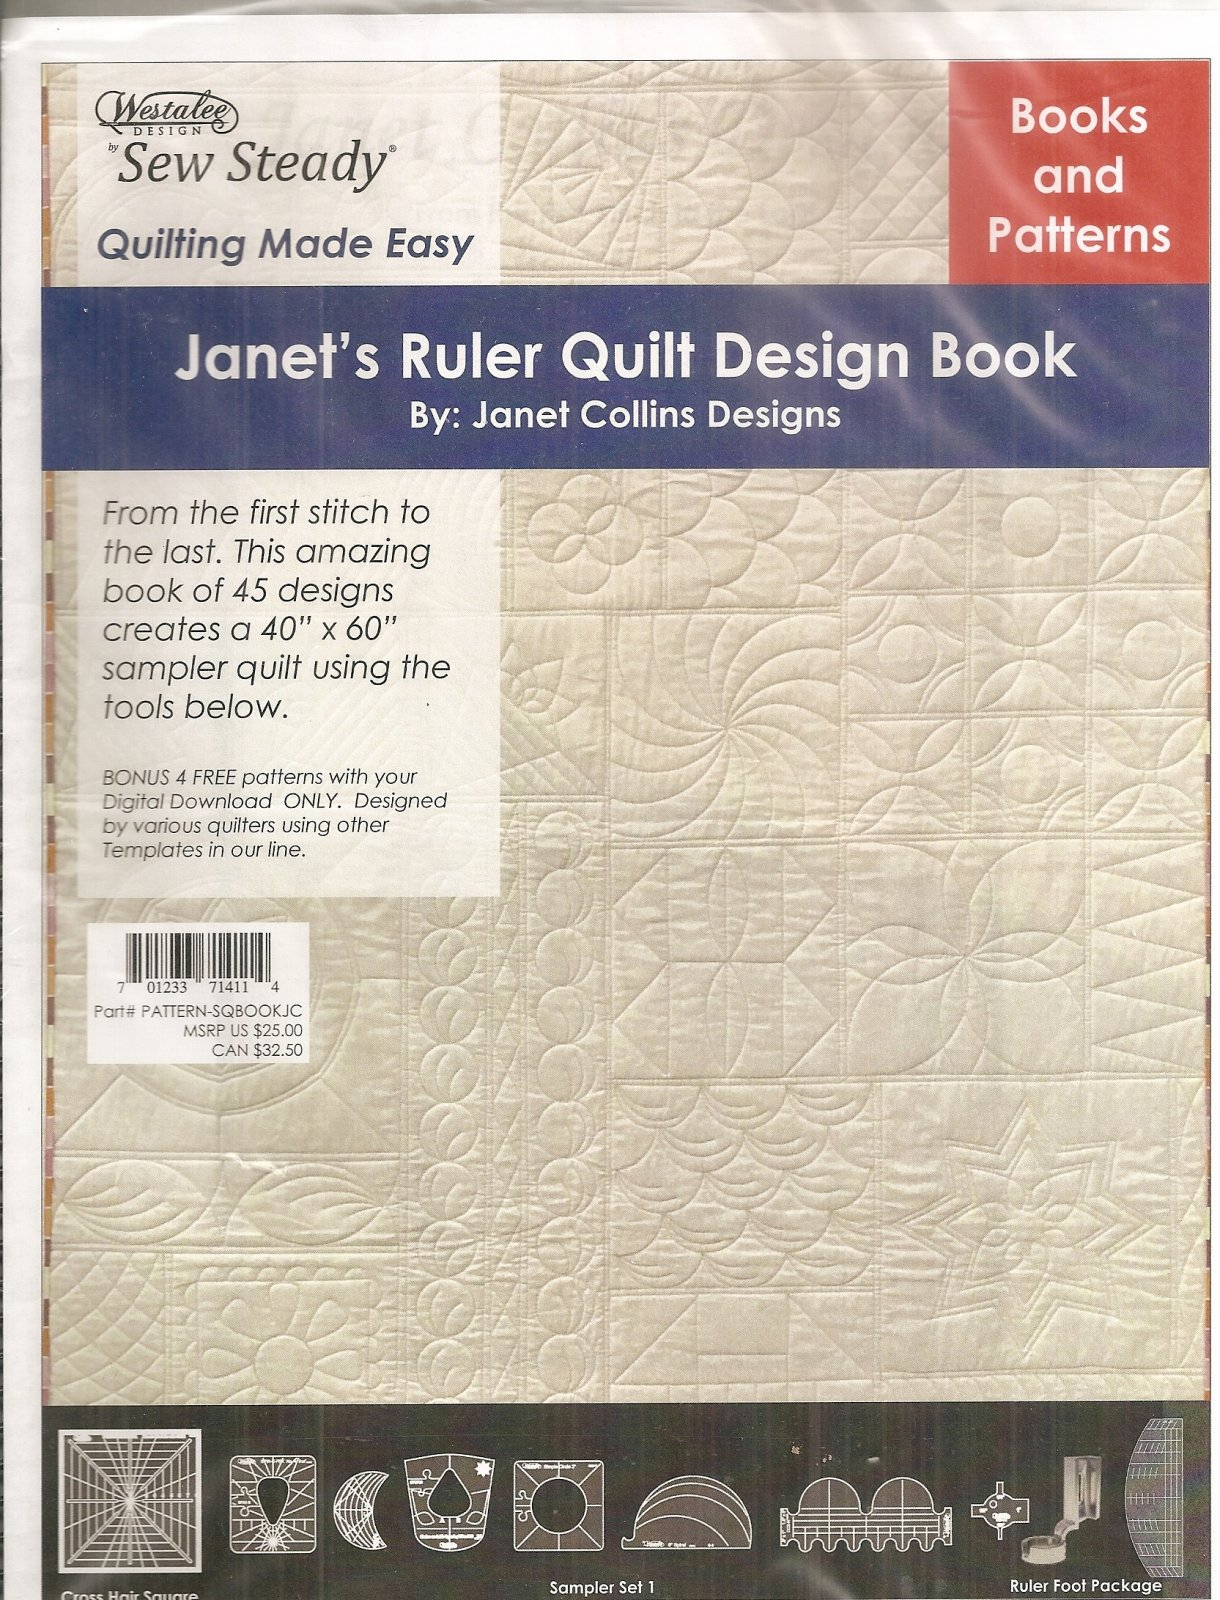 Janets Ruler Quilt Design Book